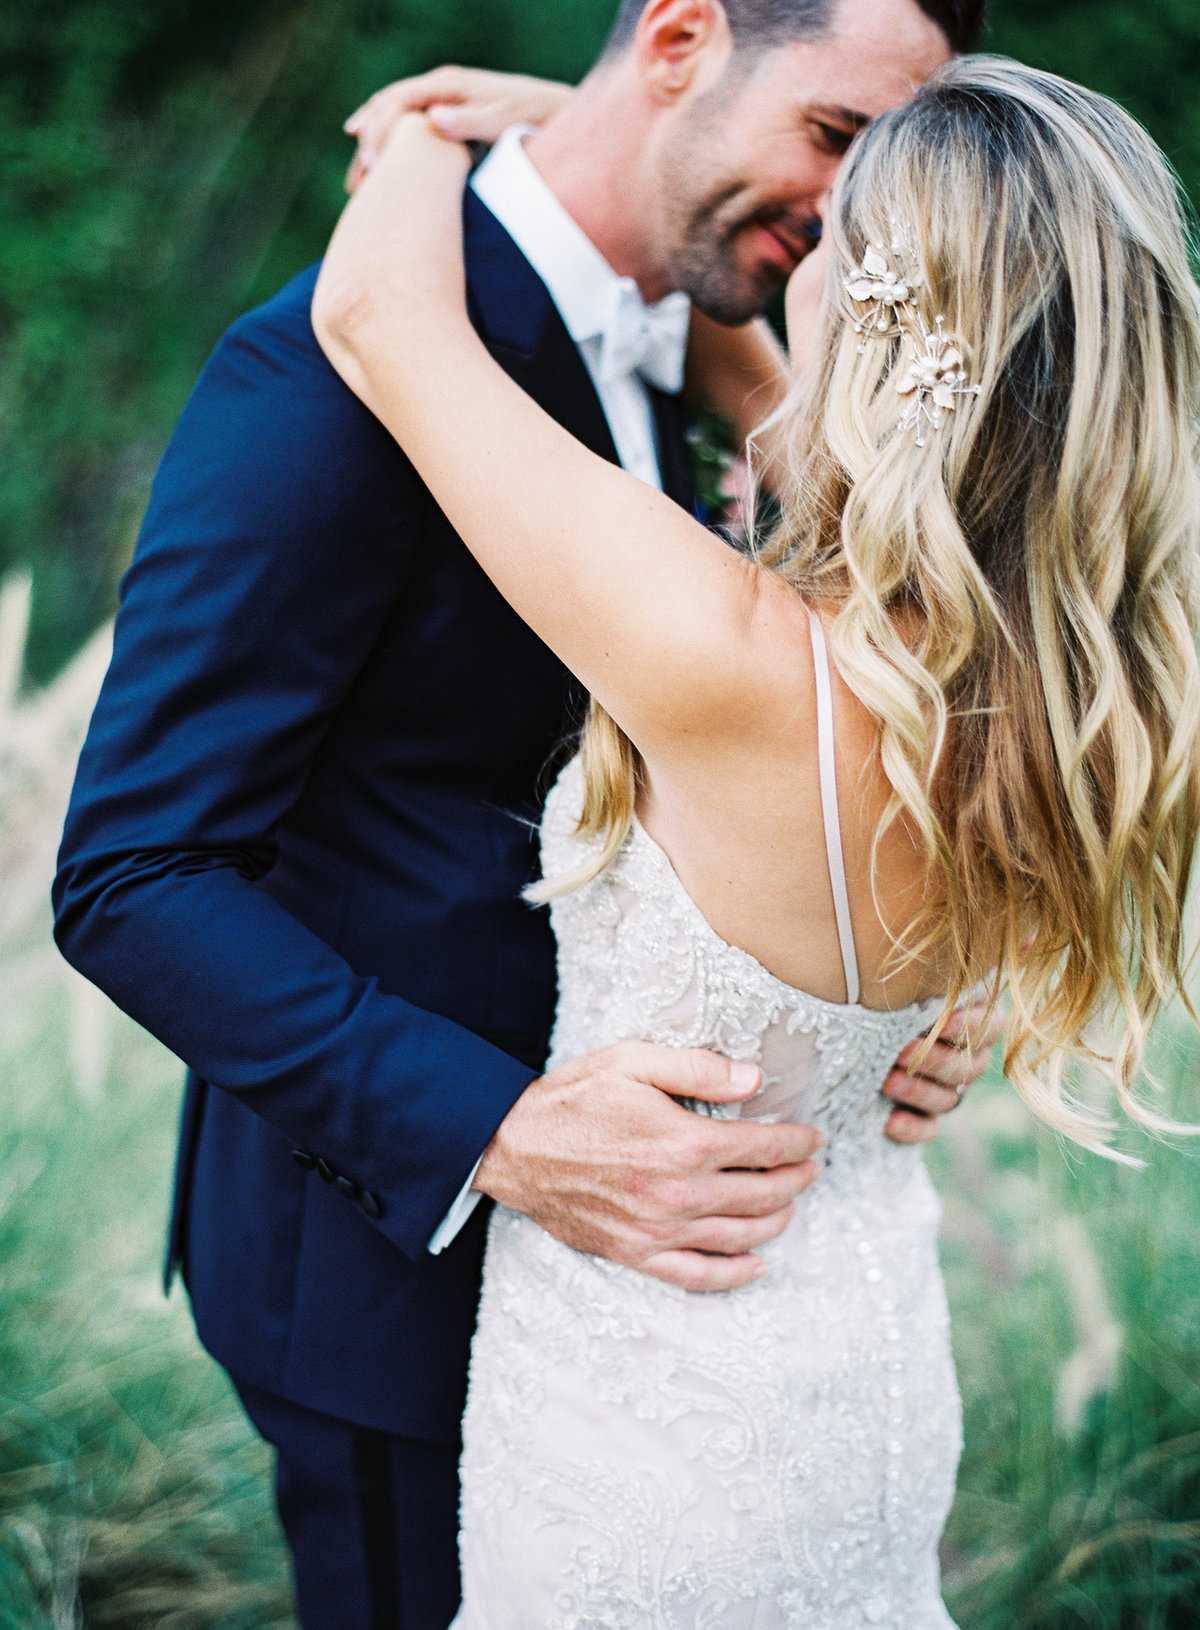 Arizona Biltmore Wedding - Mary Claire Photography-3